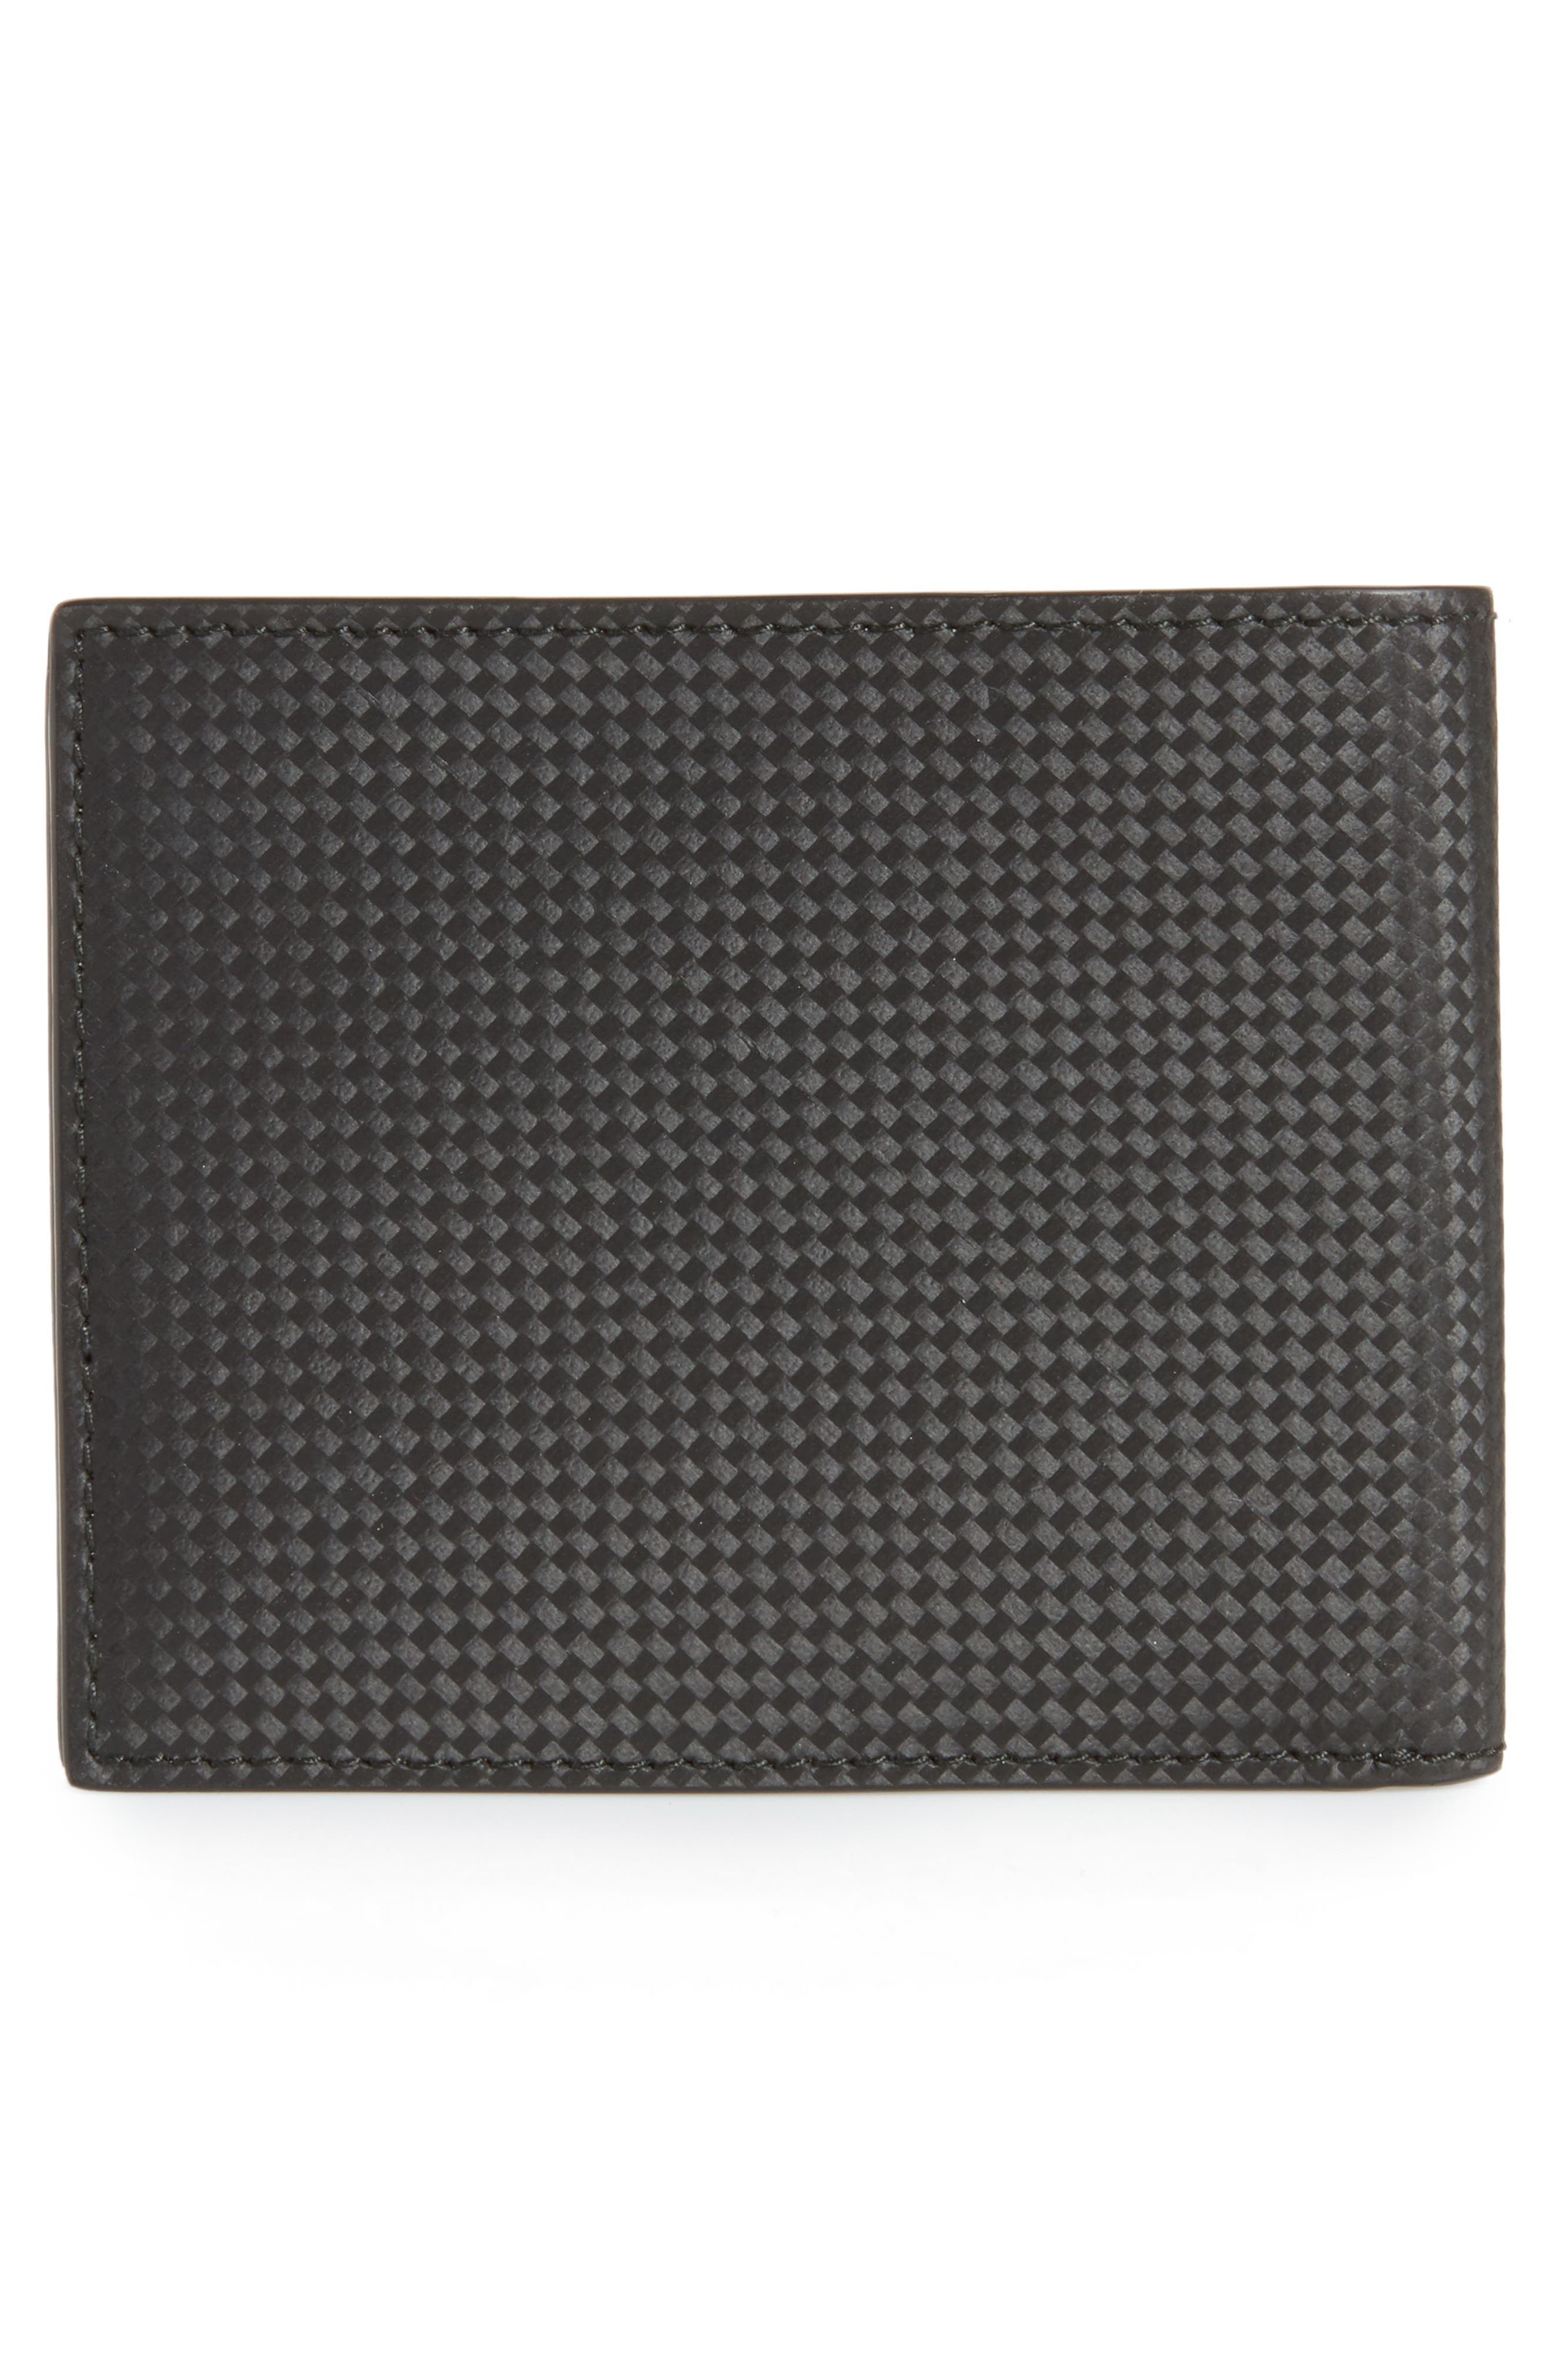 Extreme Leather Wallet,                             Alternate thumbnail 3, color,                             001